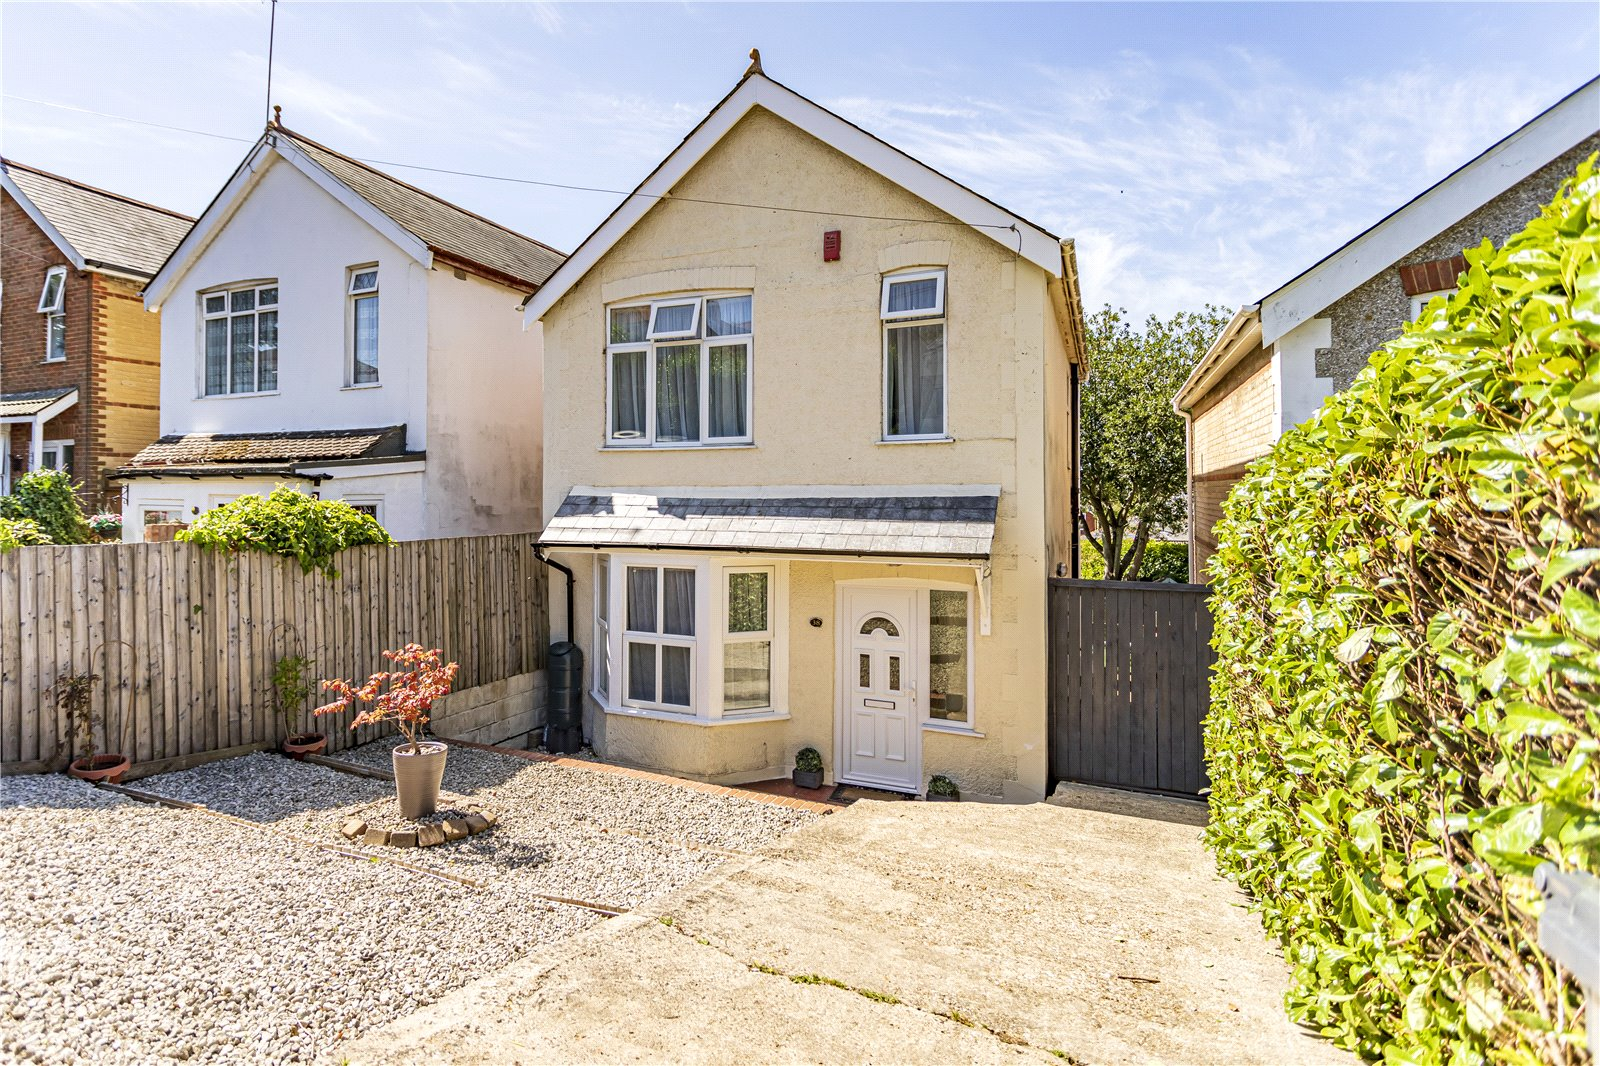 3 bed house for sale in Lincoln Road, Parkstone - Property Image 1